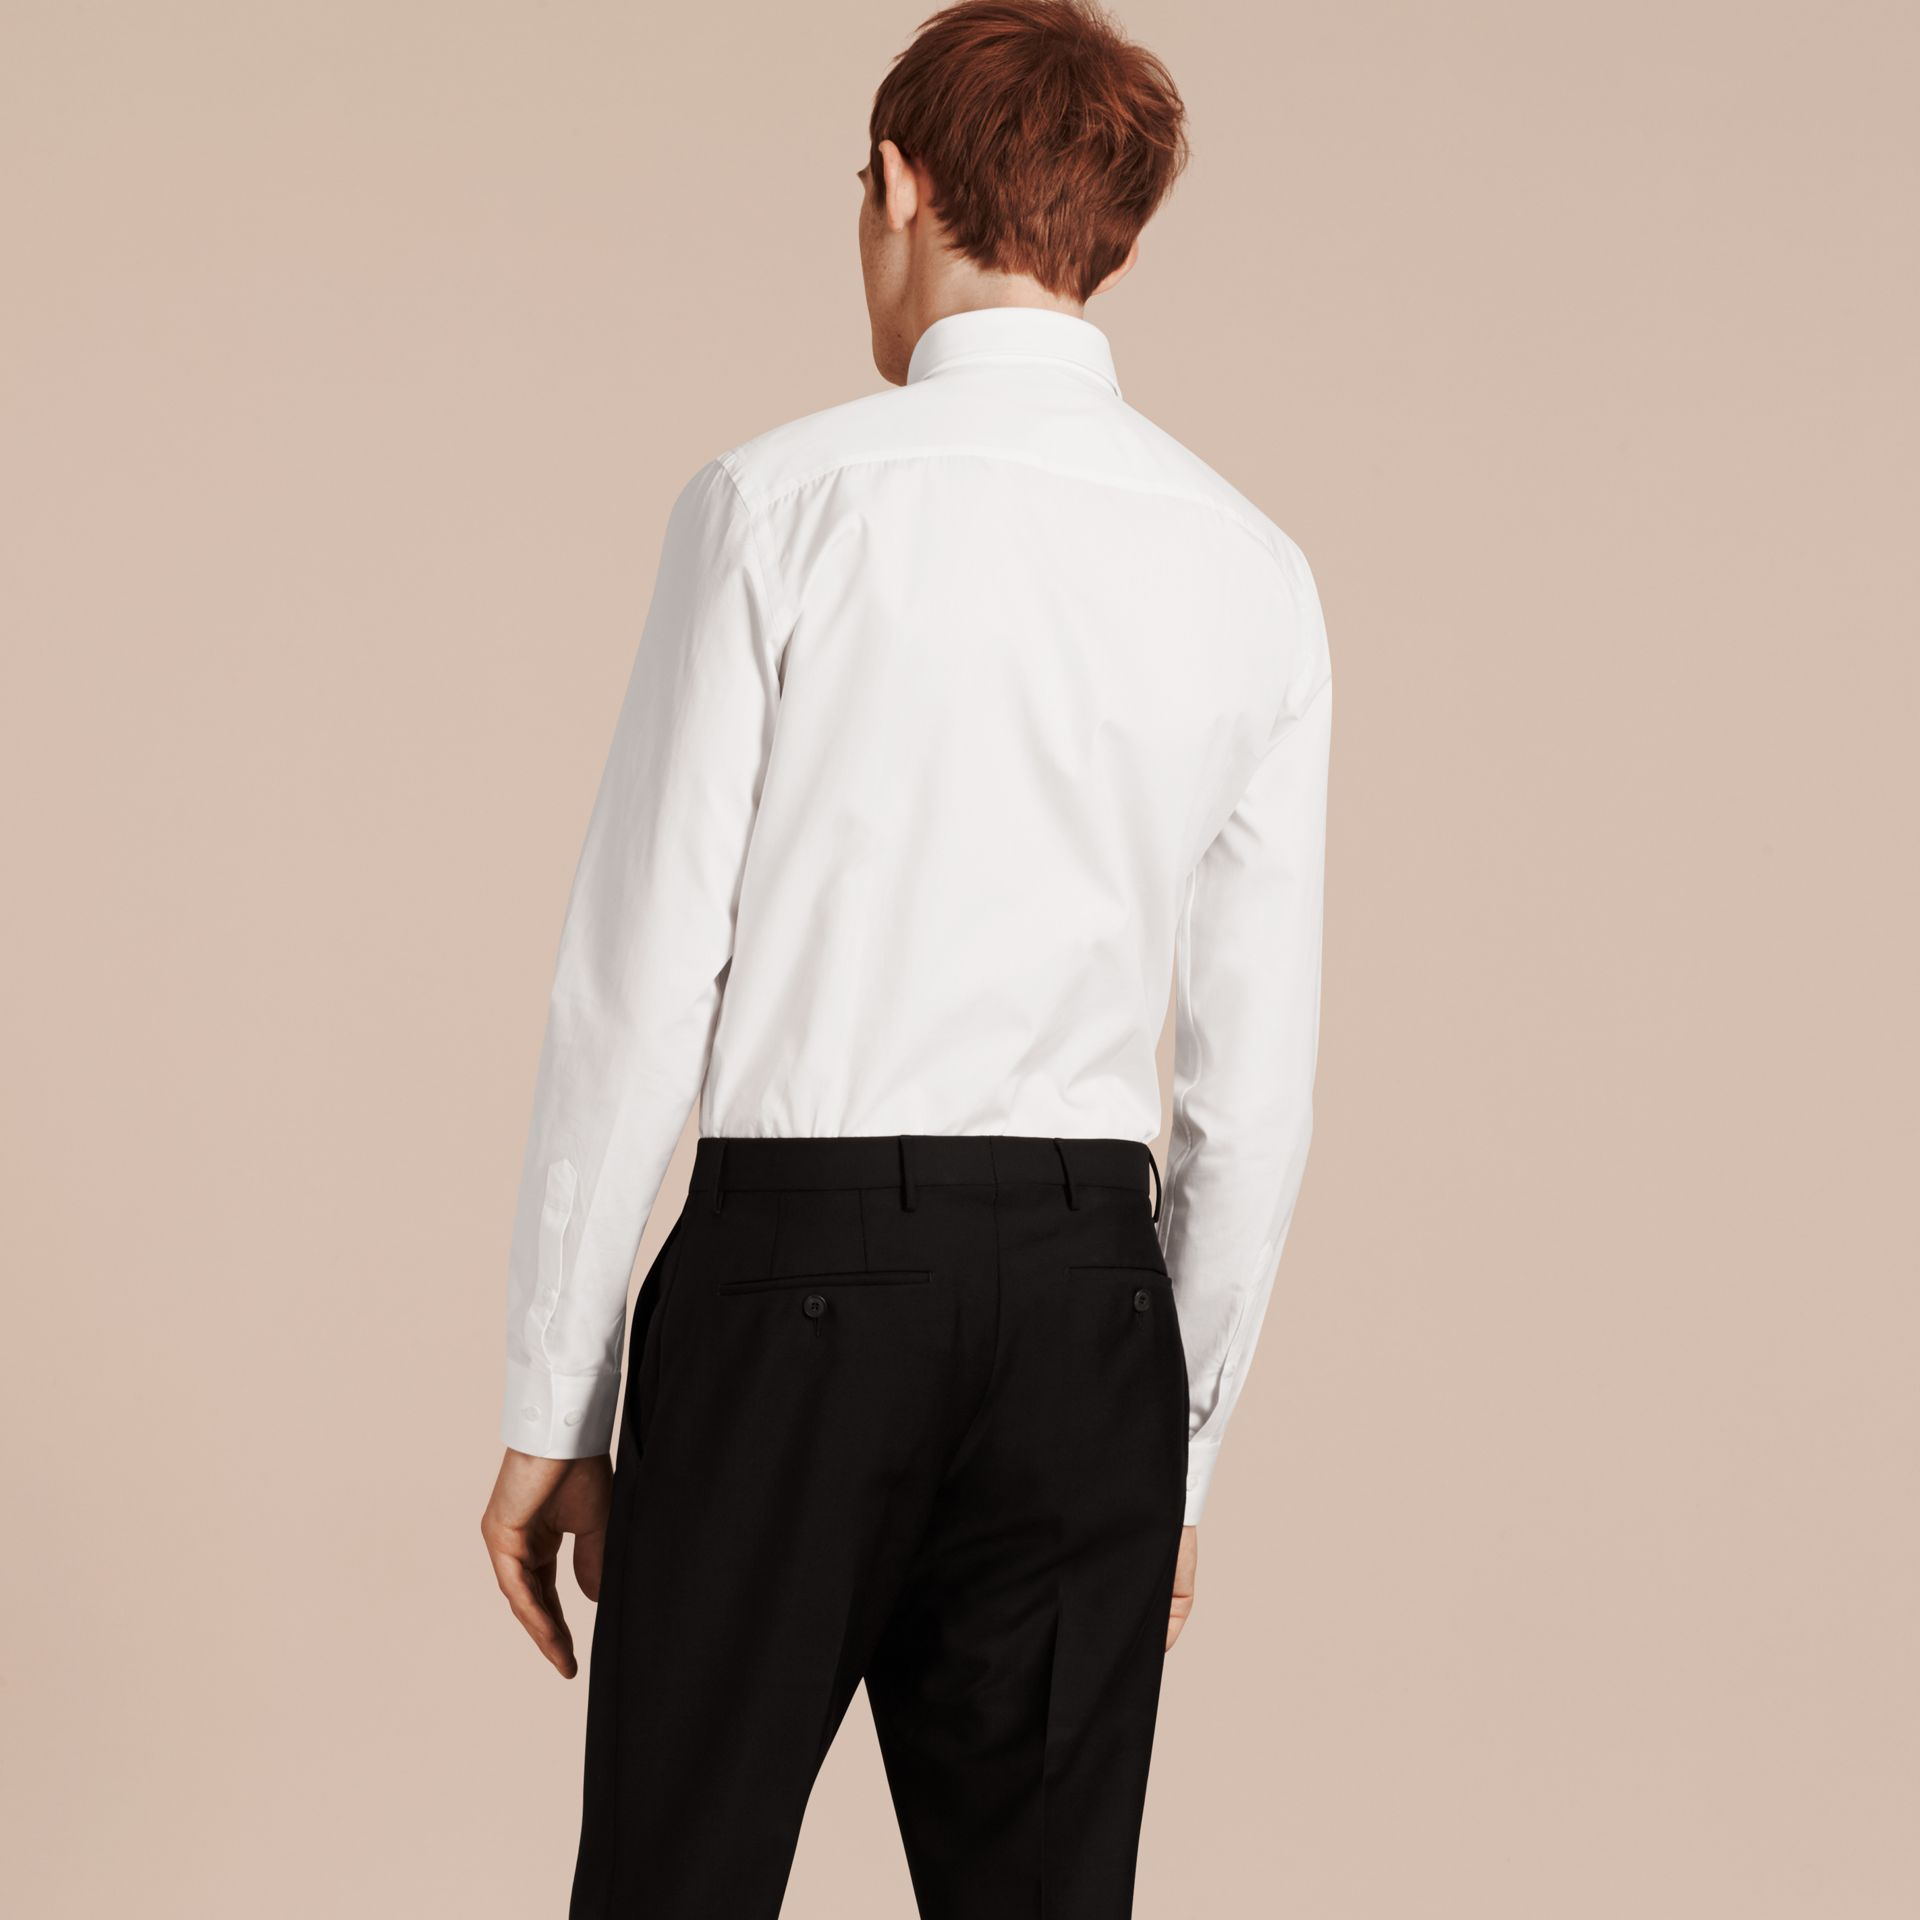 Slim Fit Cotton Poplin Shirt in White - Men | Burberry Hong Kong - gallery image 3